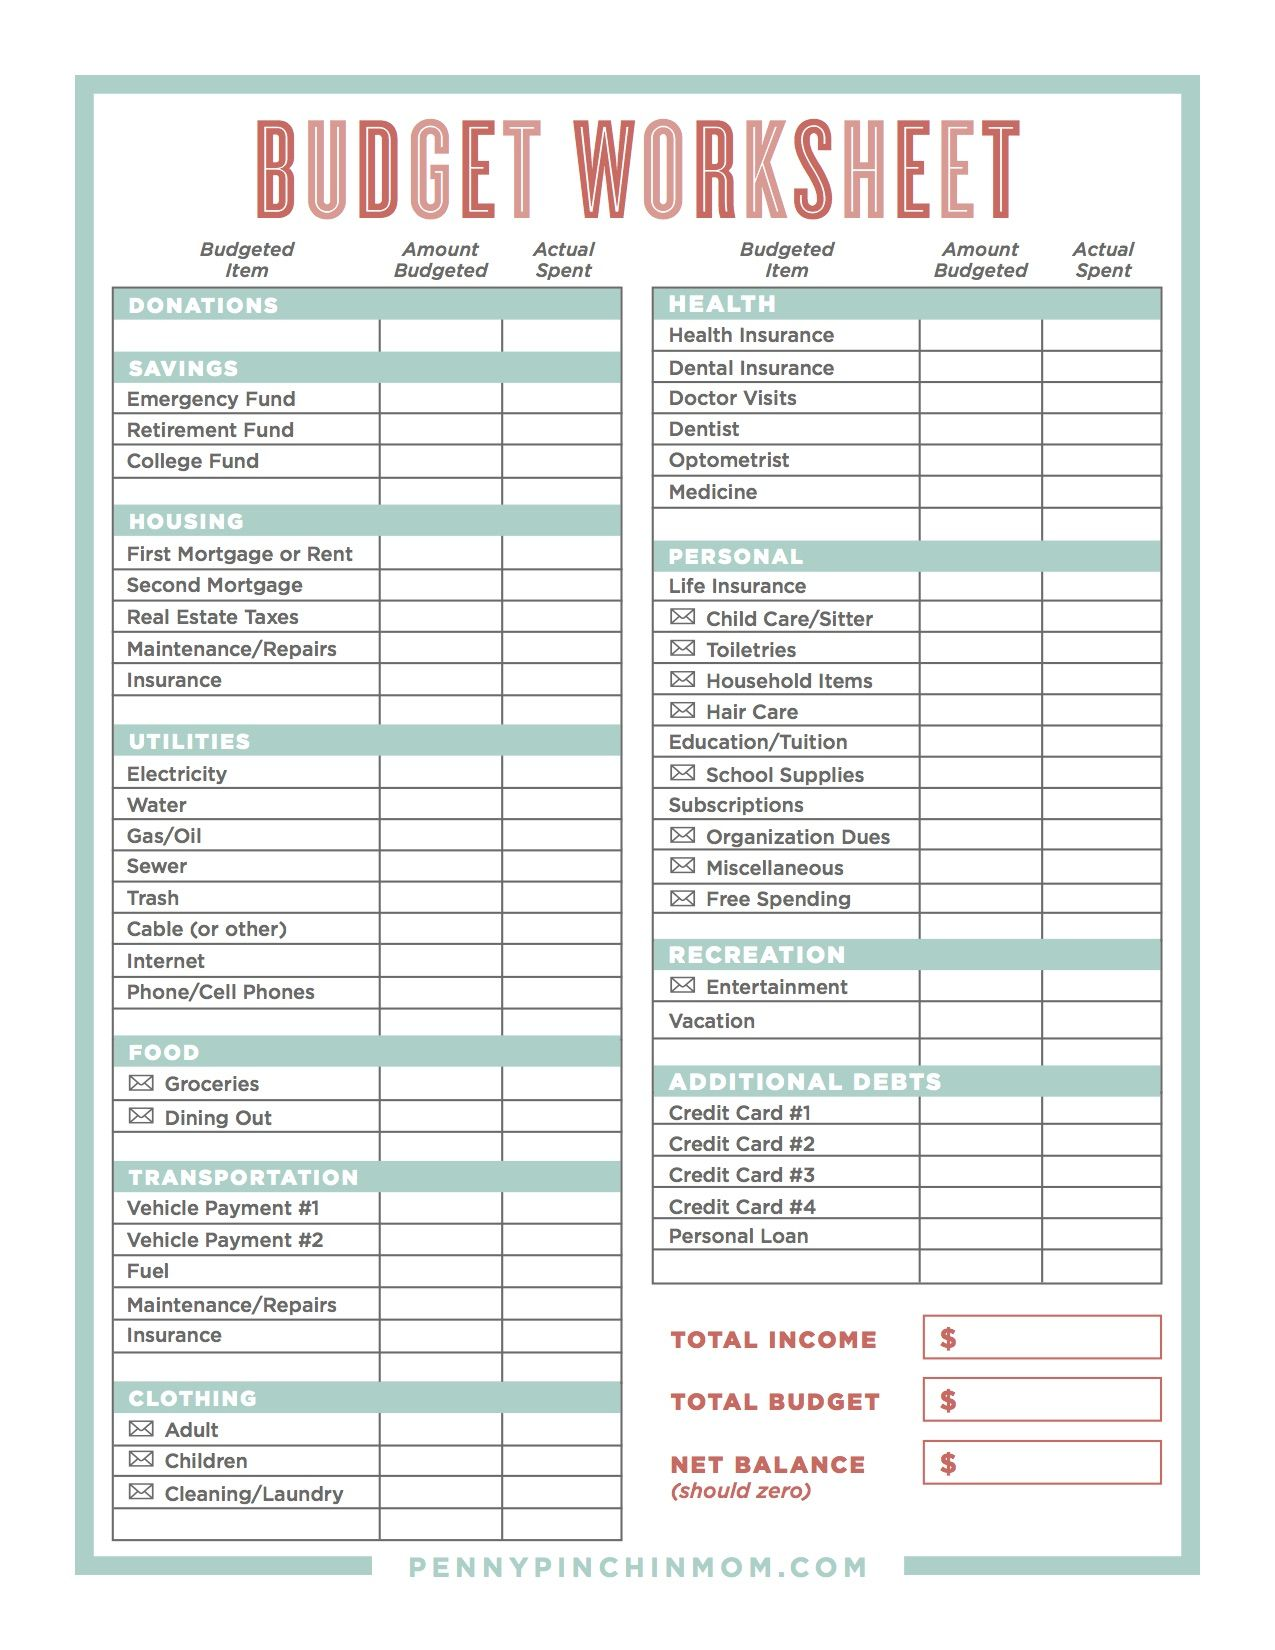 Worksheets Creating A Budget Worksheet how to create a budget even if you suck at budgeting budgeting